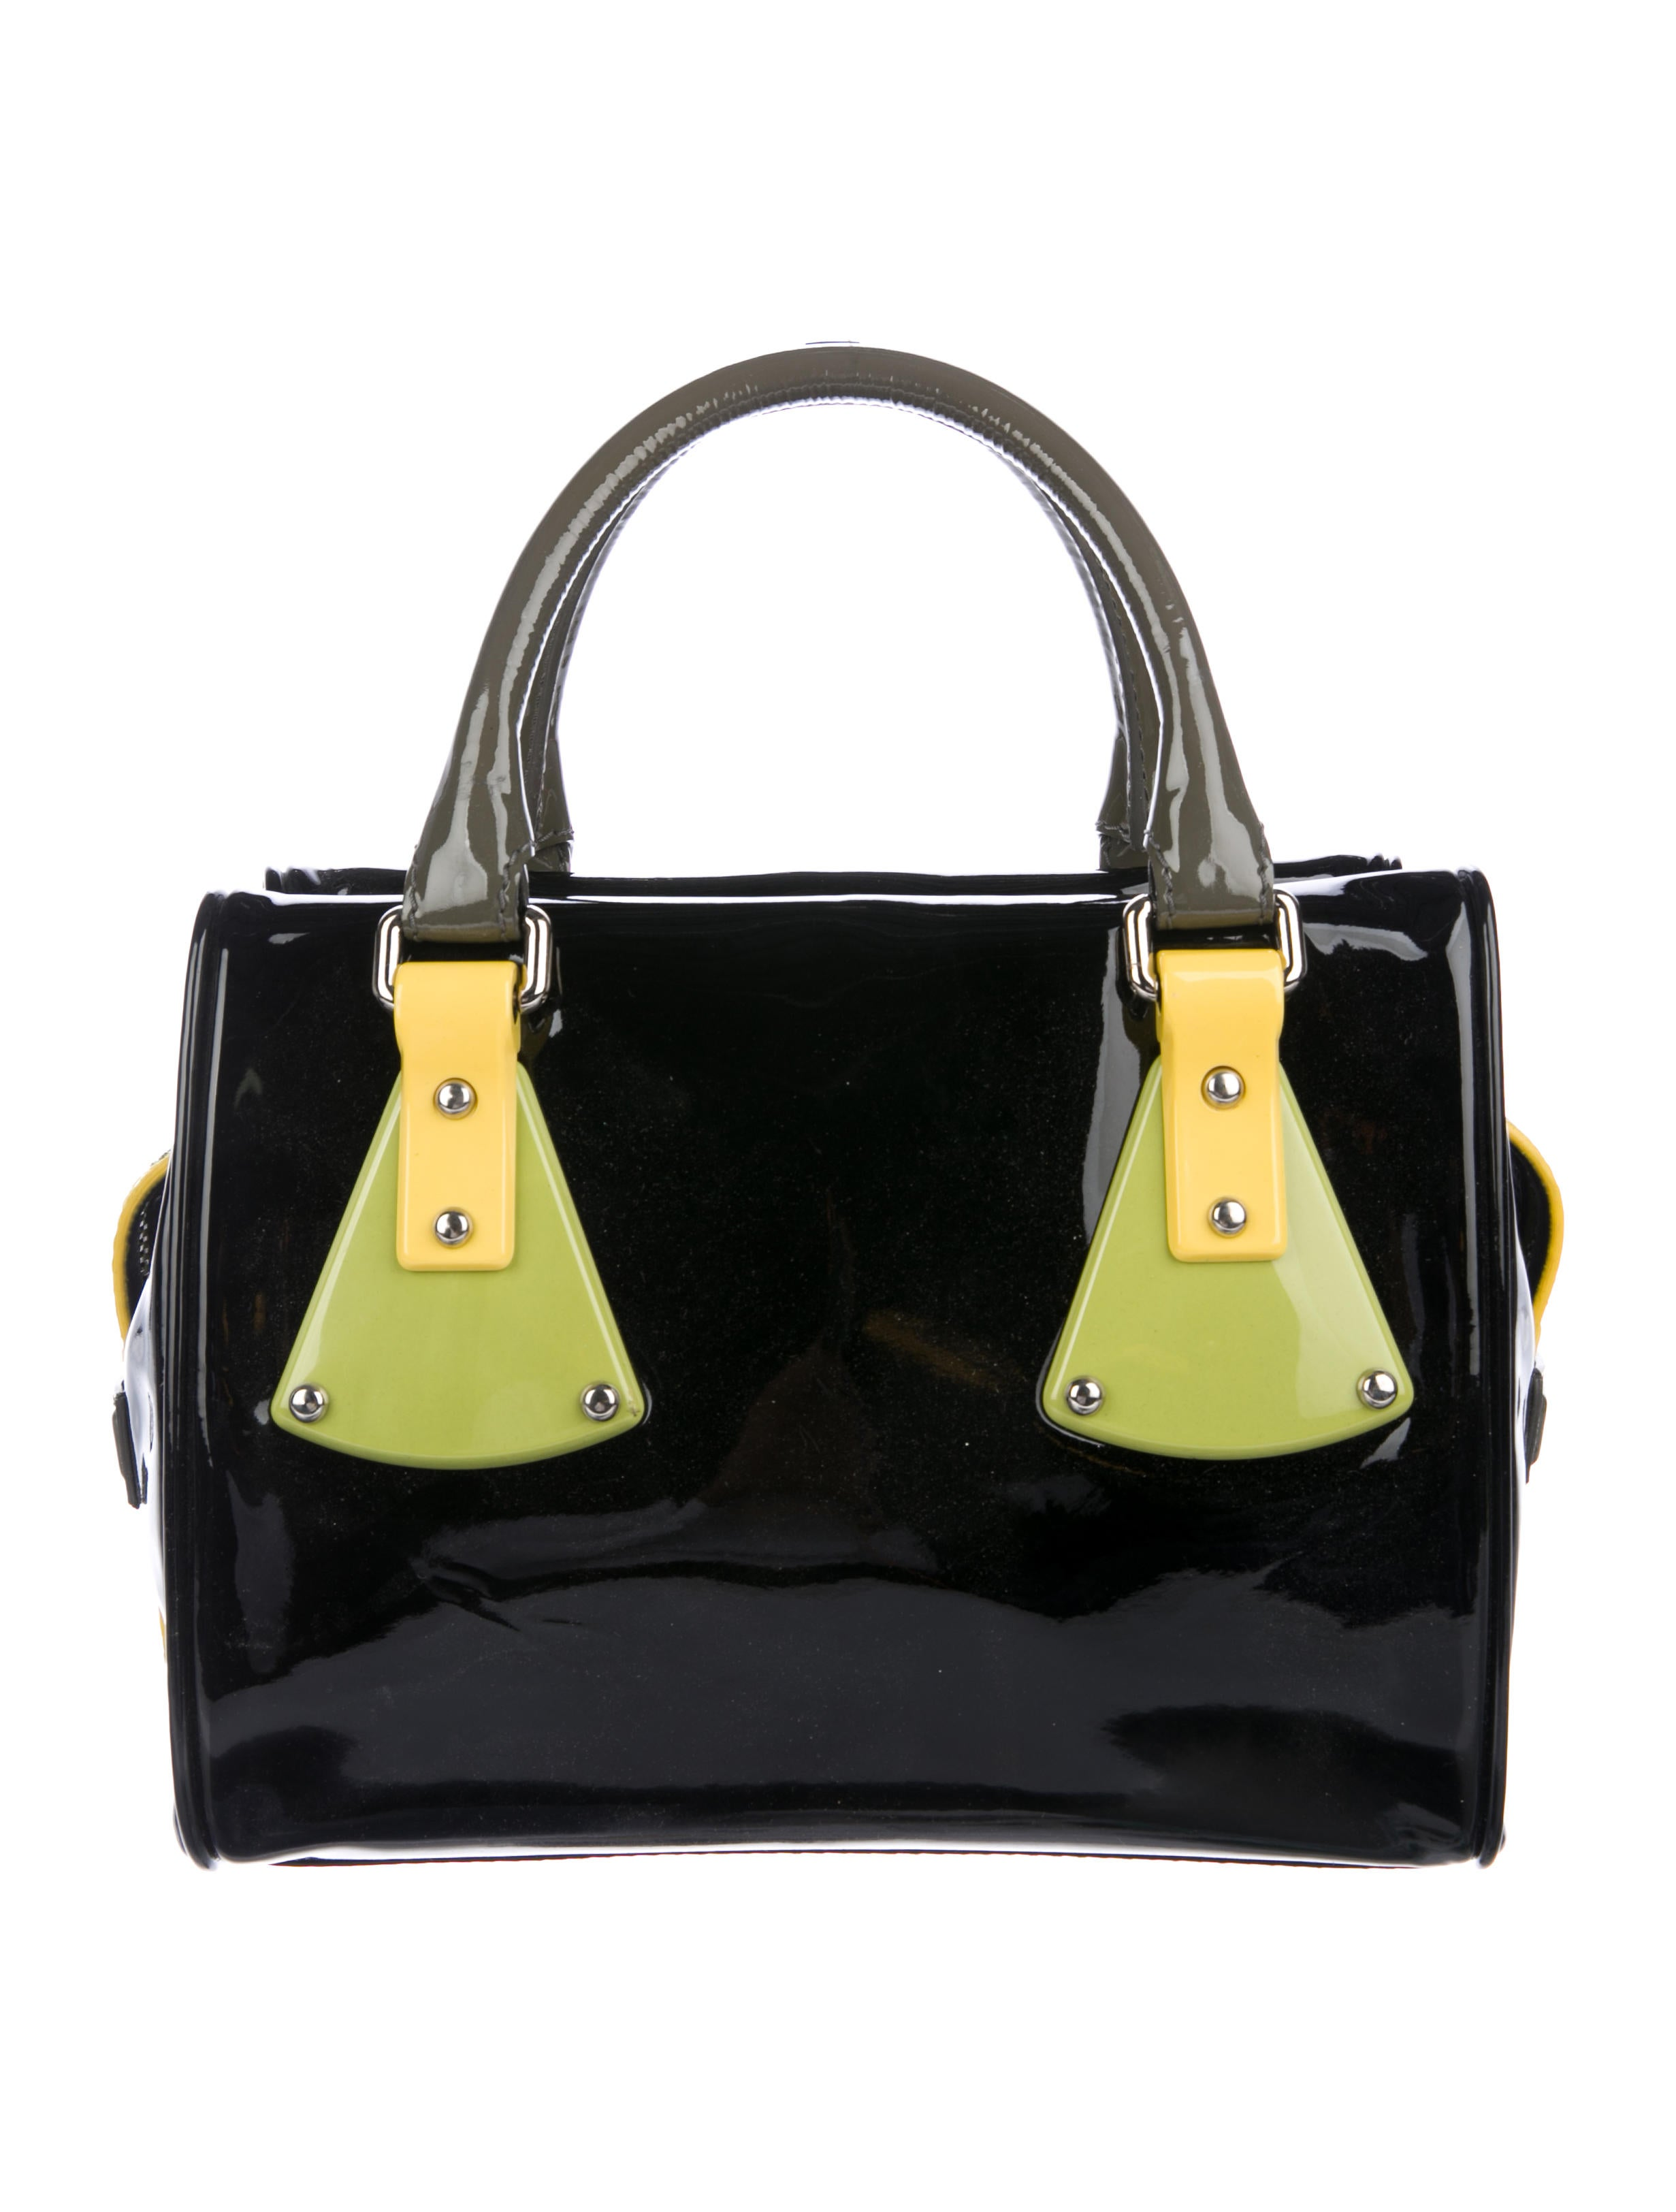 patent-leather-handle-bag by giorgio-armani 949414213d8c5